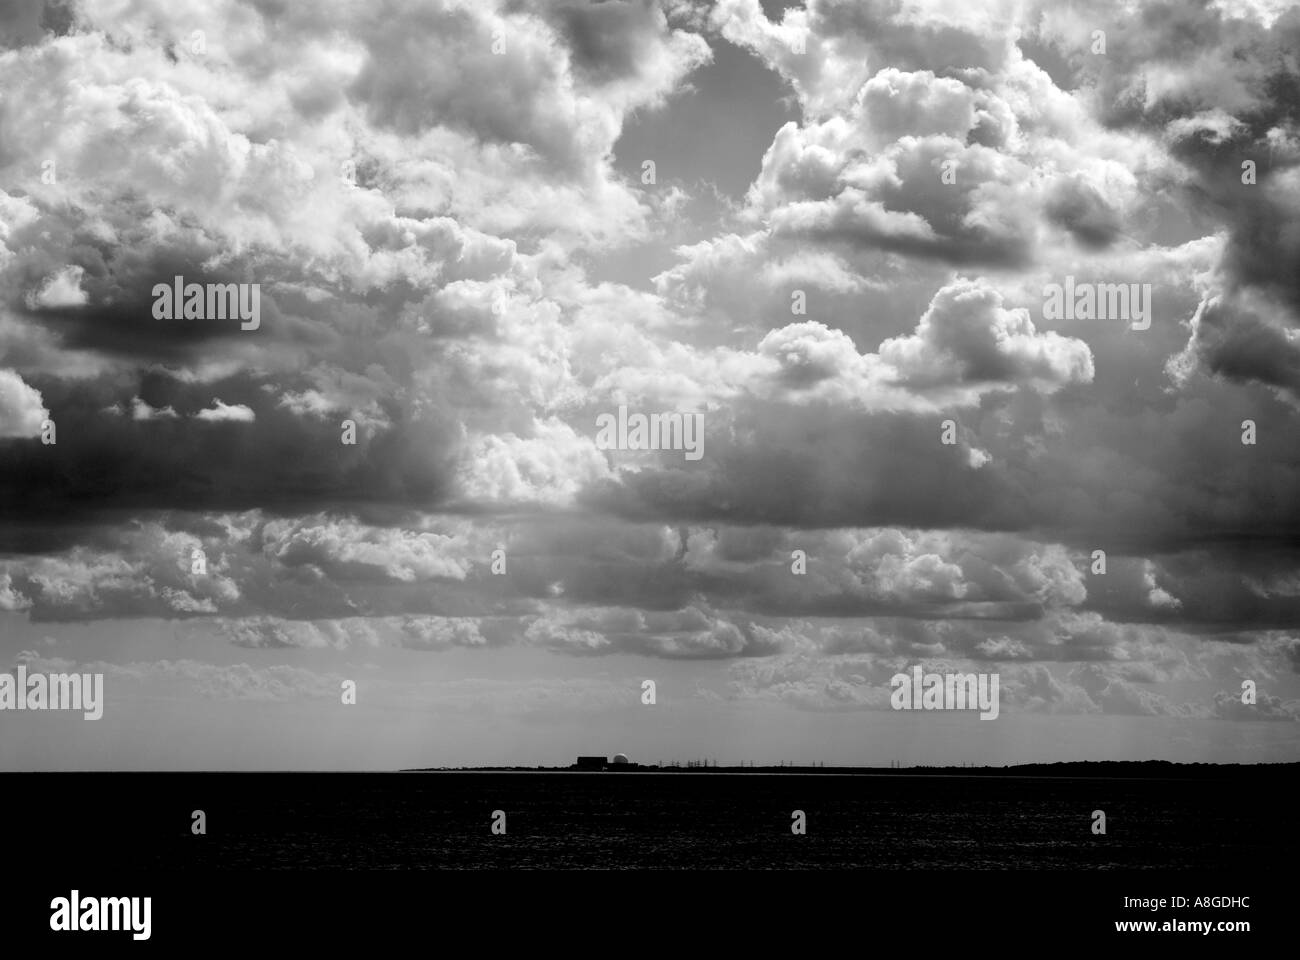 Sizewell B PWR Nuclear Power Station on the coast of Suffolk, eastern England. - Stock Image